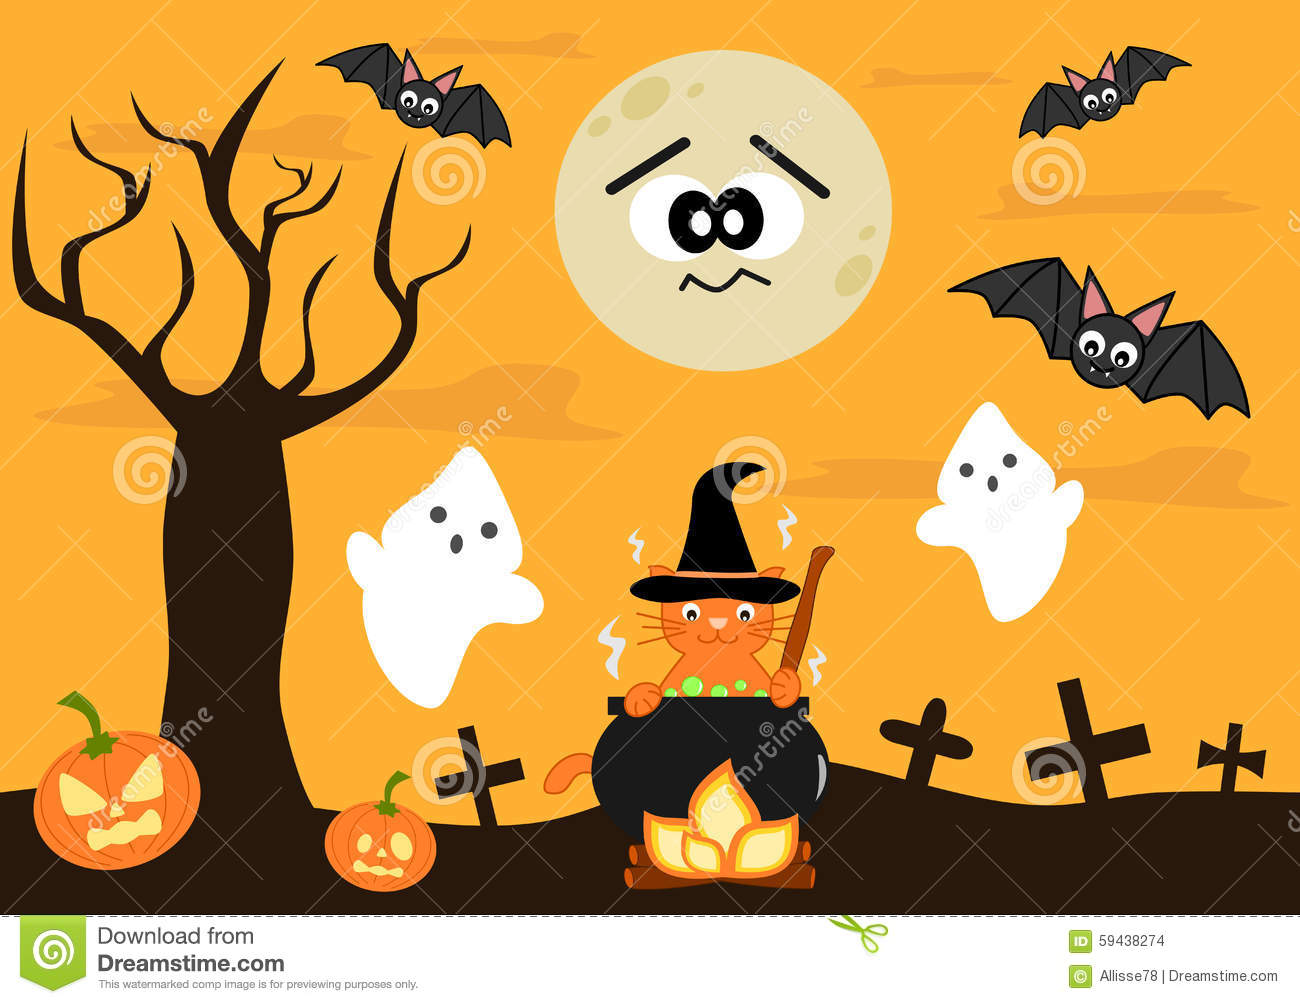 cartoon halloween background for kids - Halloween Images For Kids